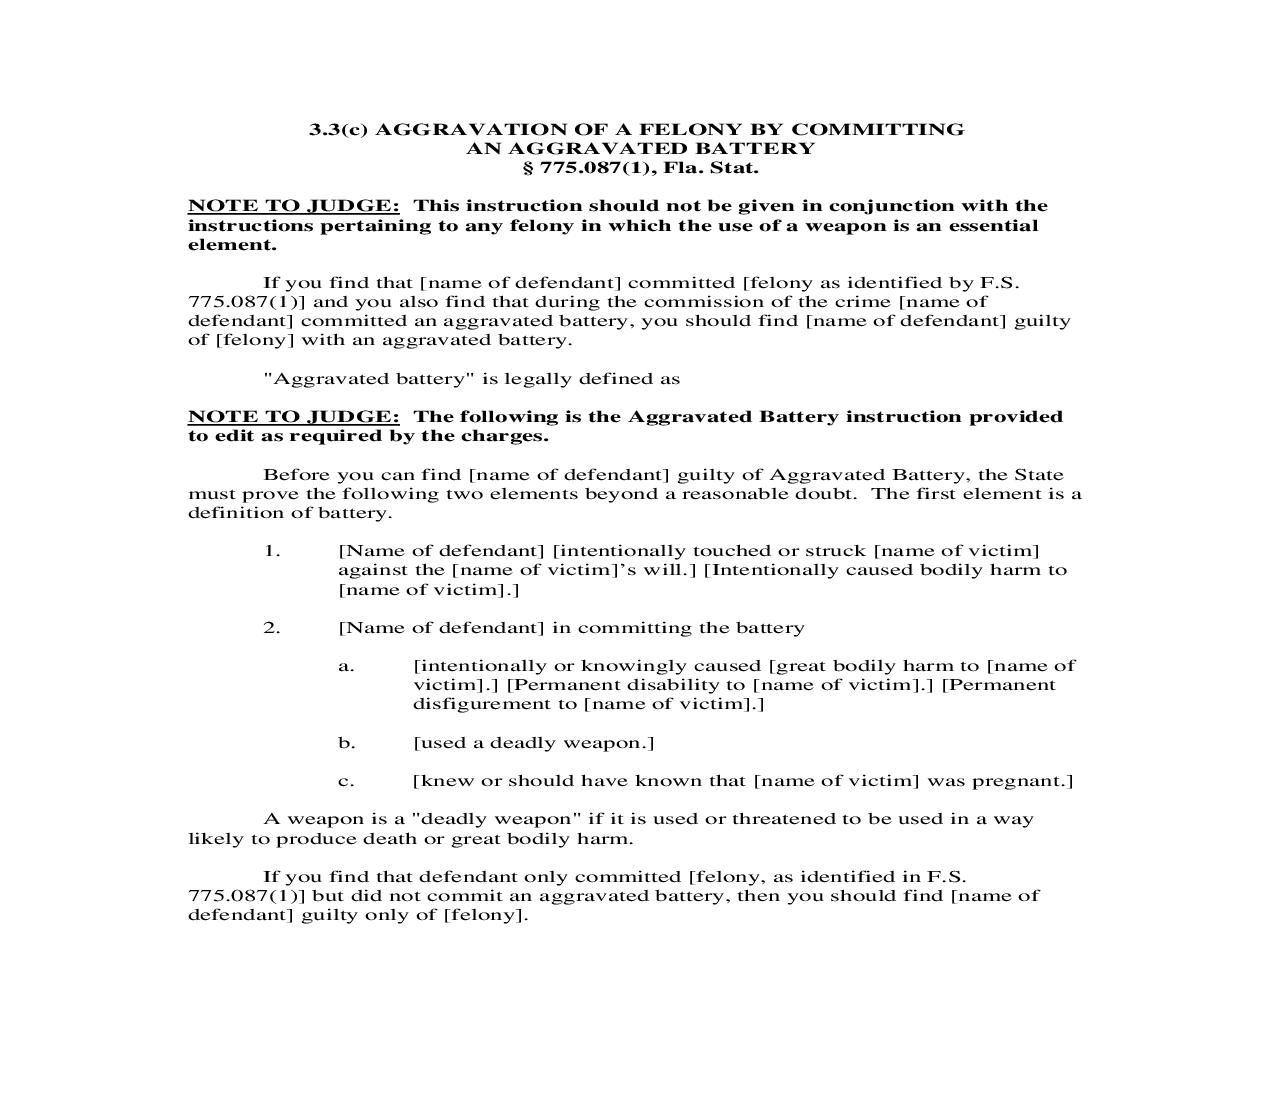 3.3(c). Aggravation of a Felony by Committing an Aggravated Battery | Pdf Doc Docx | Florida_JI